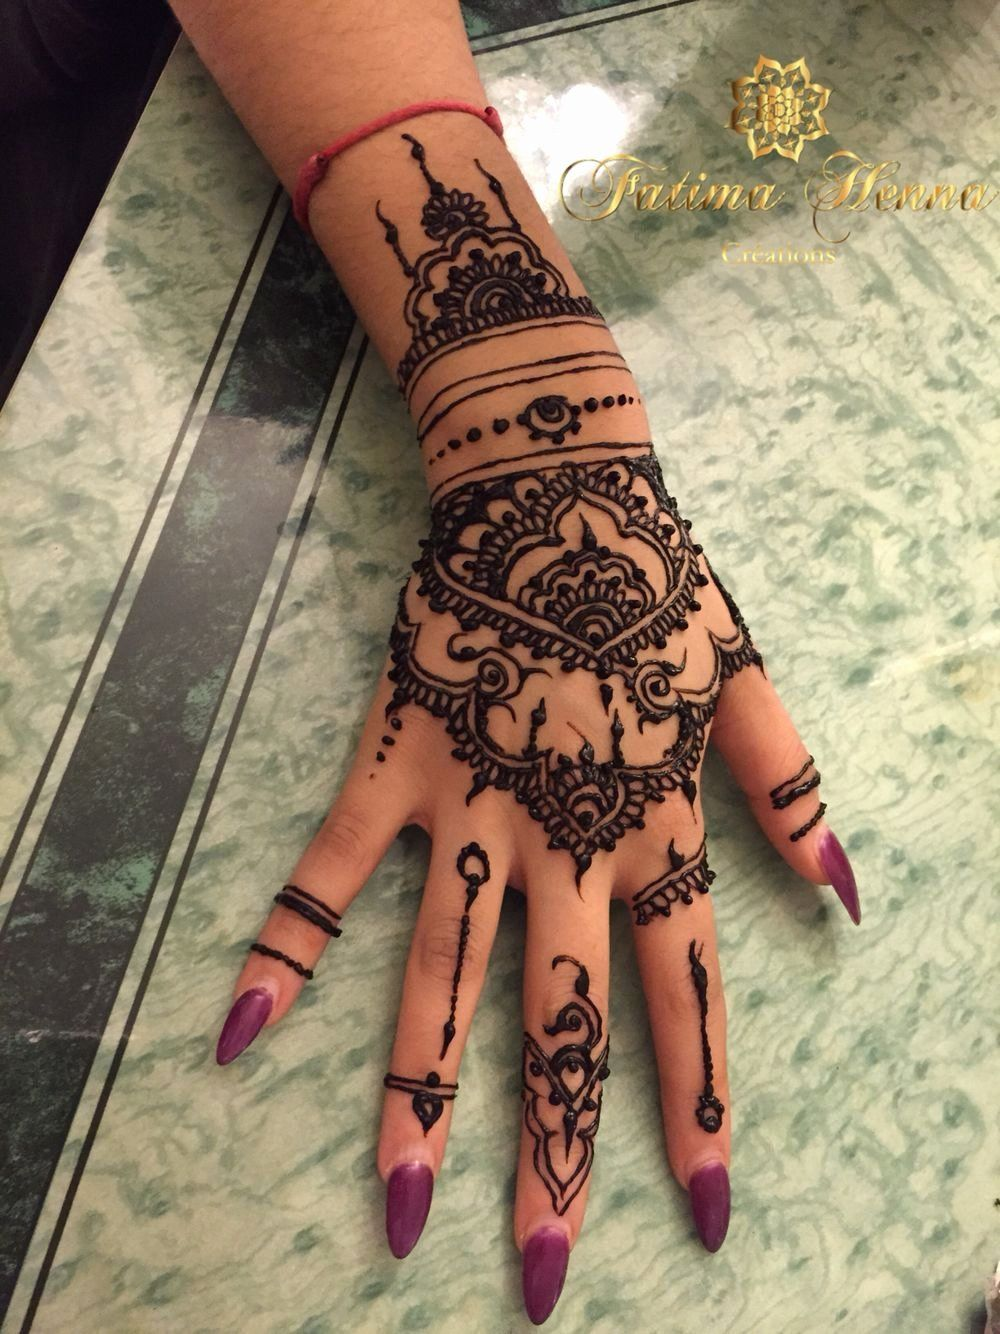 How to Remove A Henna Tattoo Fast